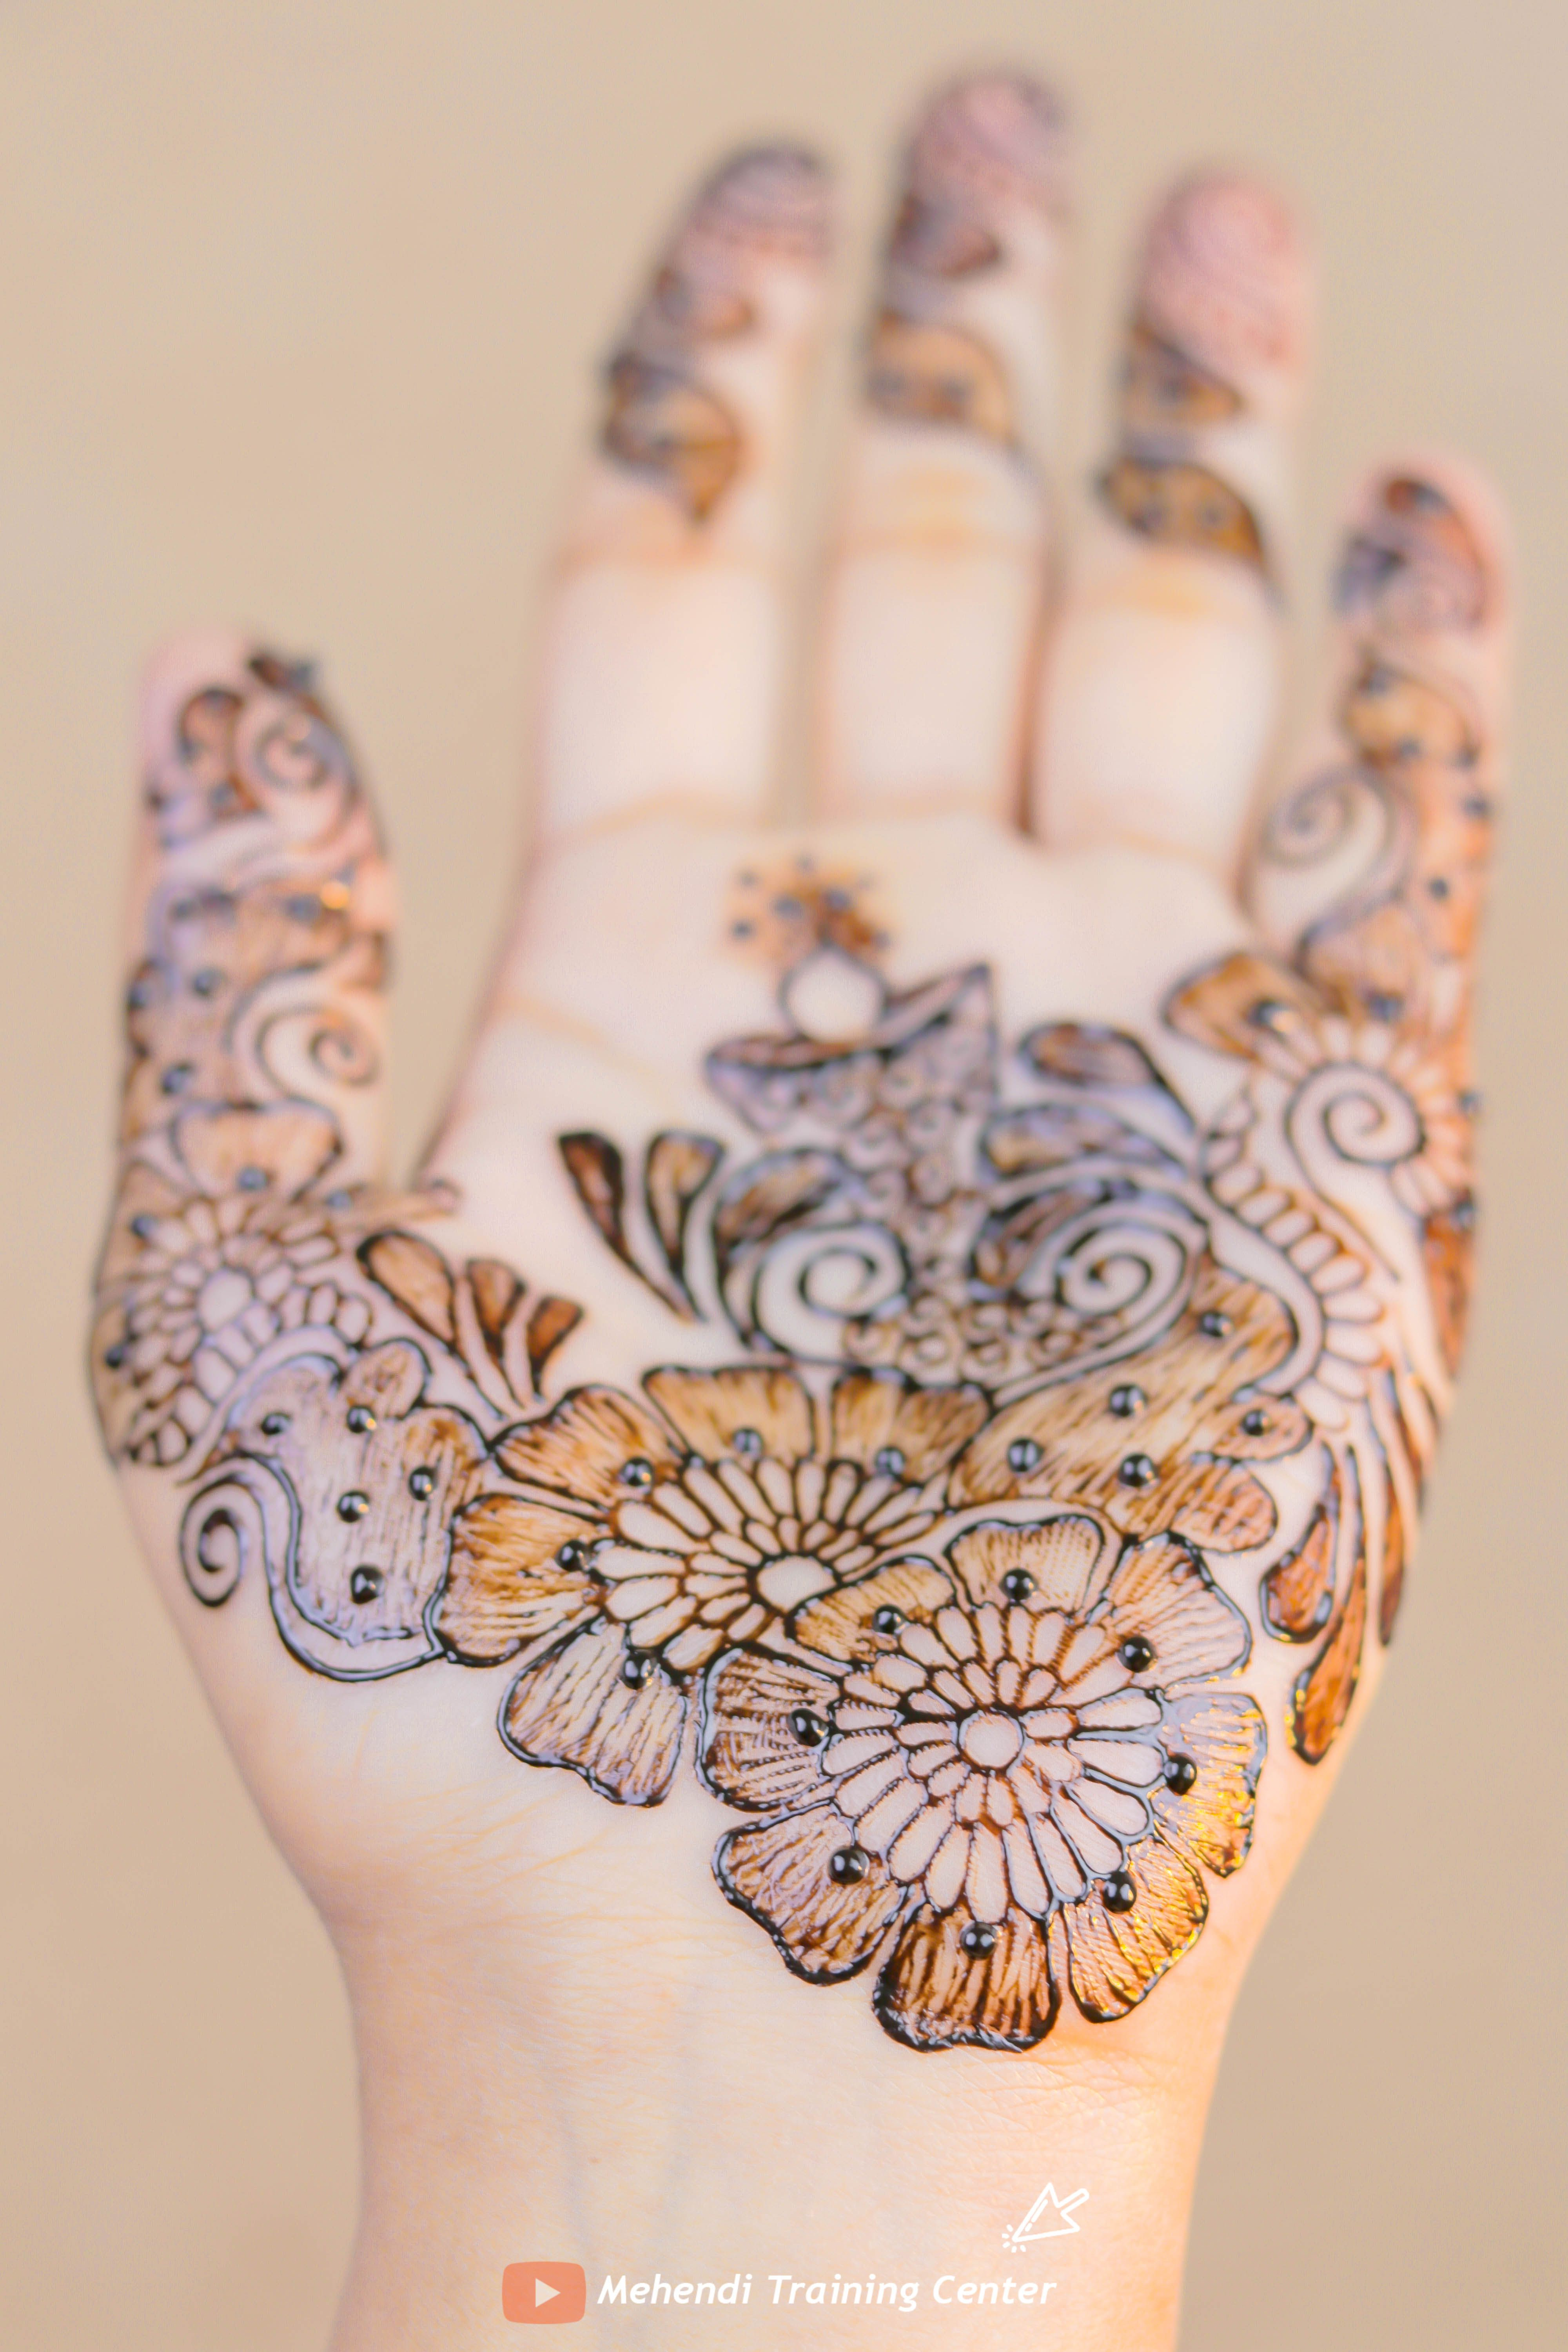 Mehndi Design 2020 Simple Mehndi Design 2020 New Mehndi Design 2020 New Mehndi Designs Mehndi Designs Simple Mehndi Designs